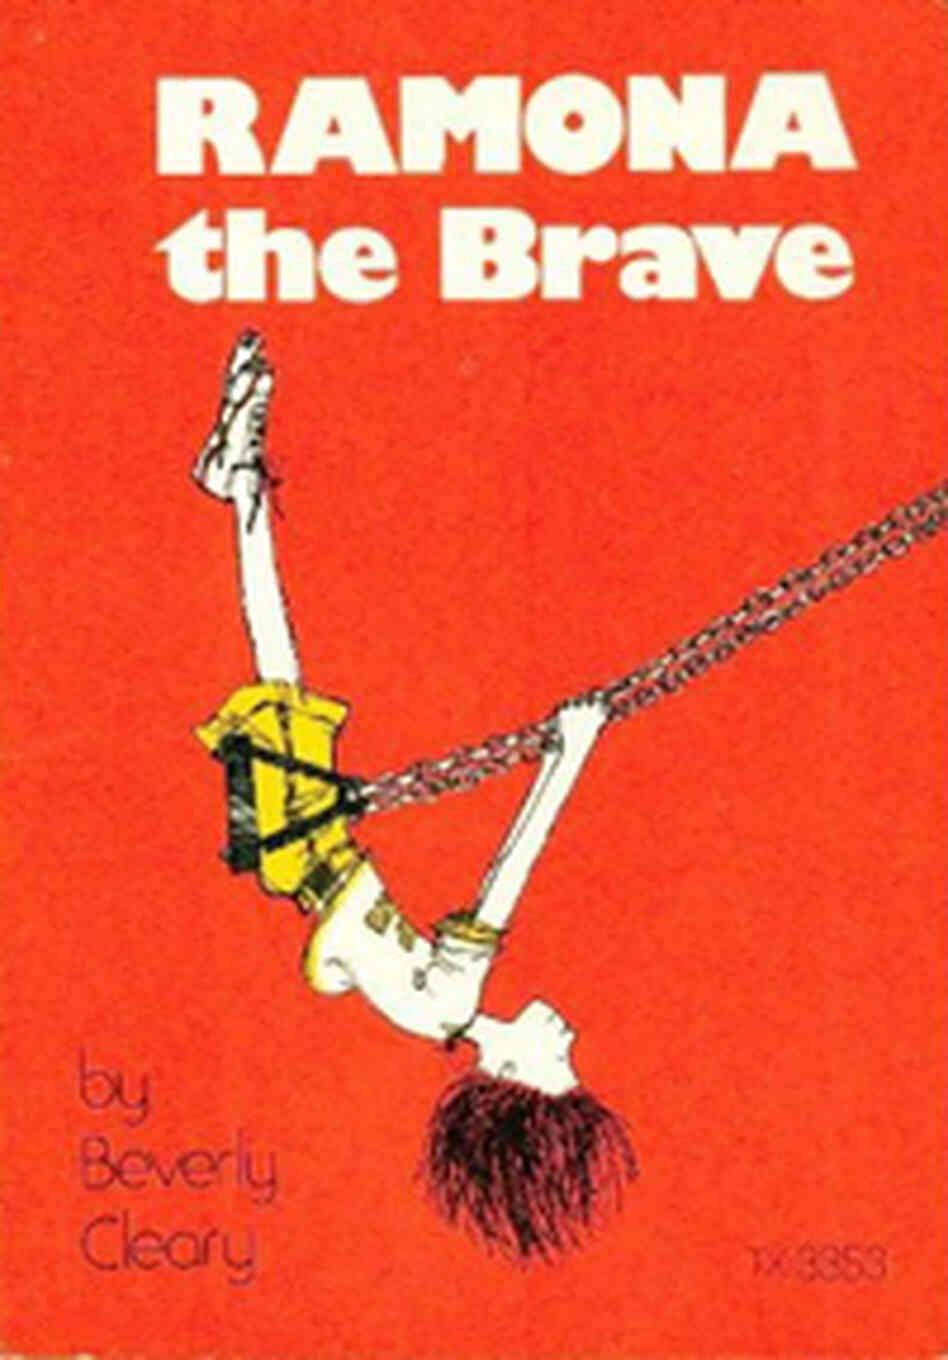 The cover of 'Ramona The Brave'.